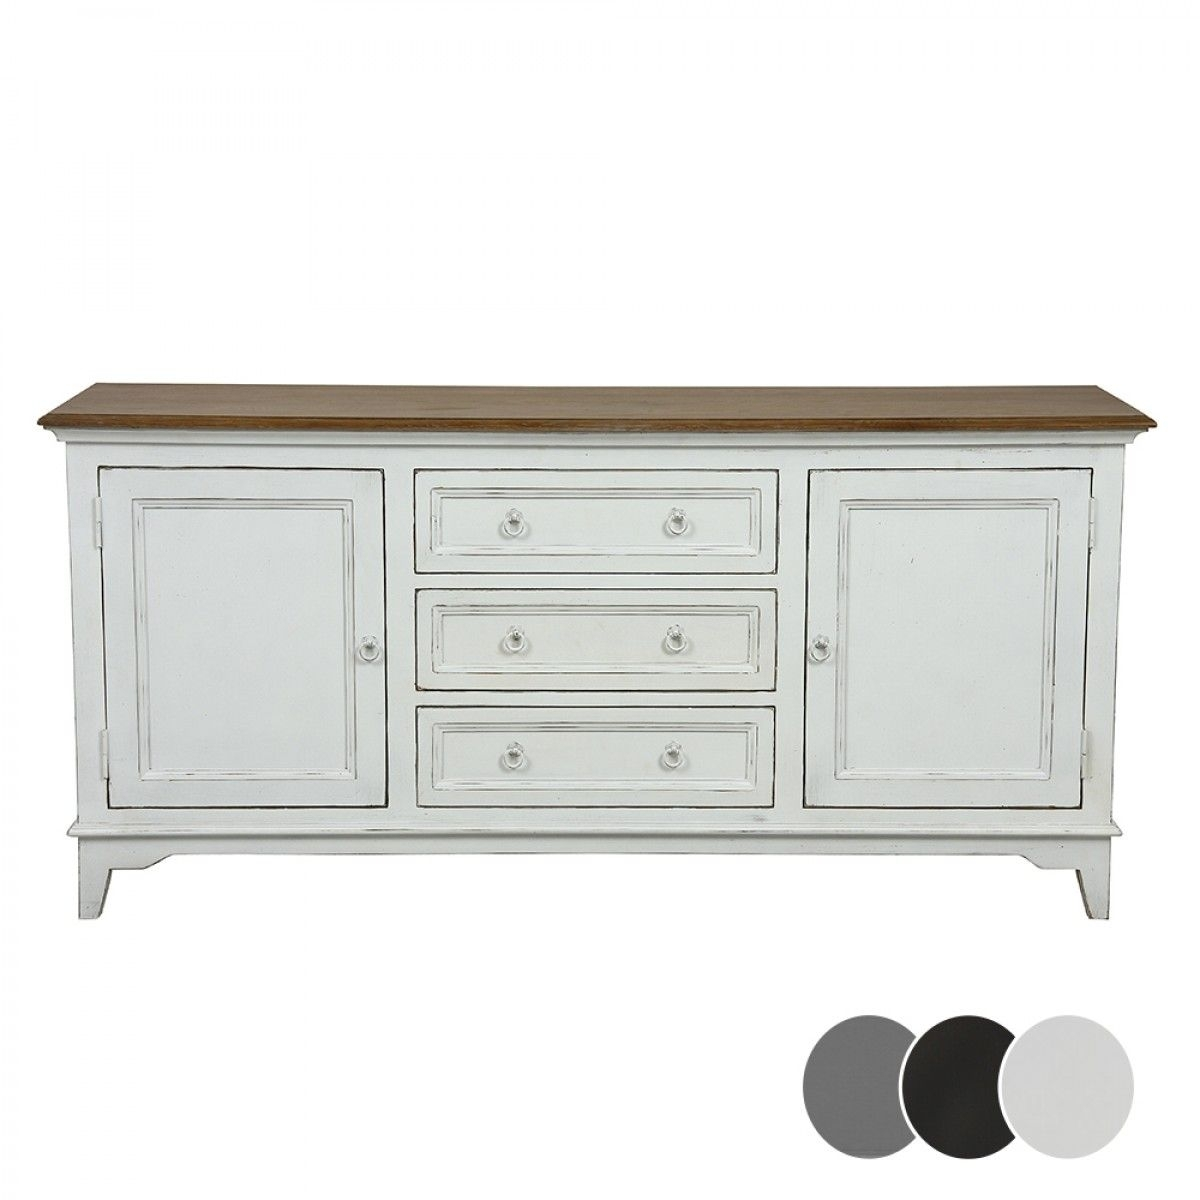 Esquisse 2 Door 3 Drawer Sideboard – Black – Buffets & Sideboards Pertaining To 4 Door 3 Drawer White Wash Sideboards (View 7 of 30)